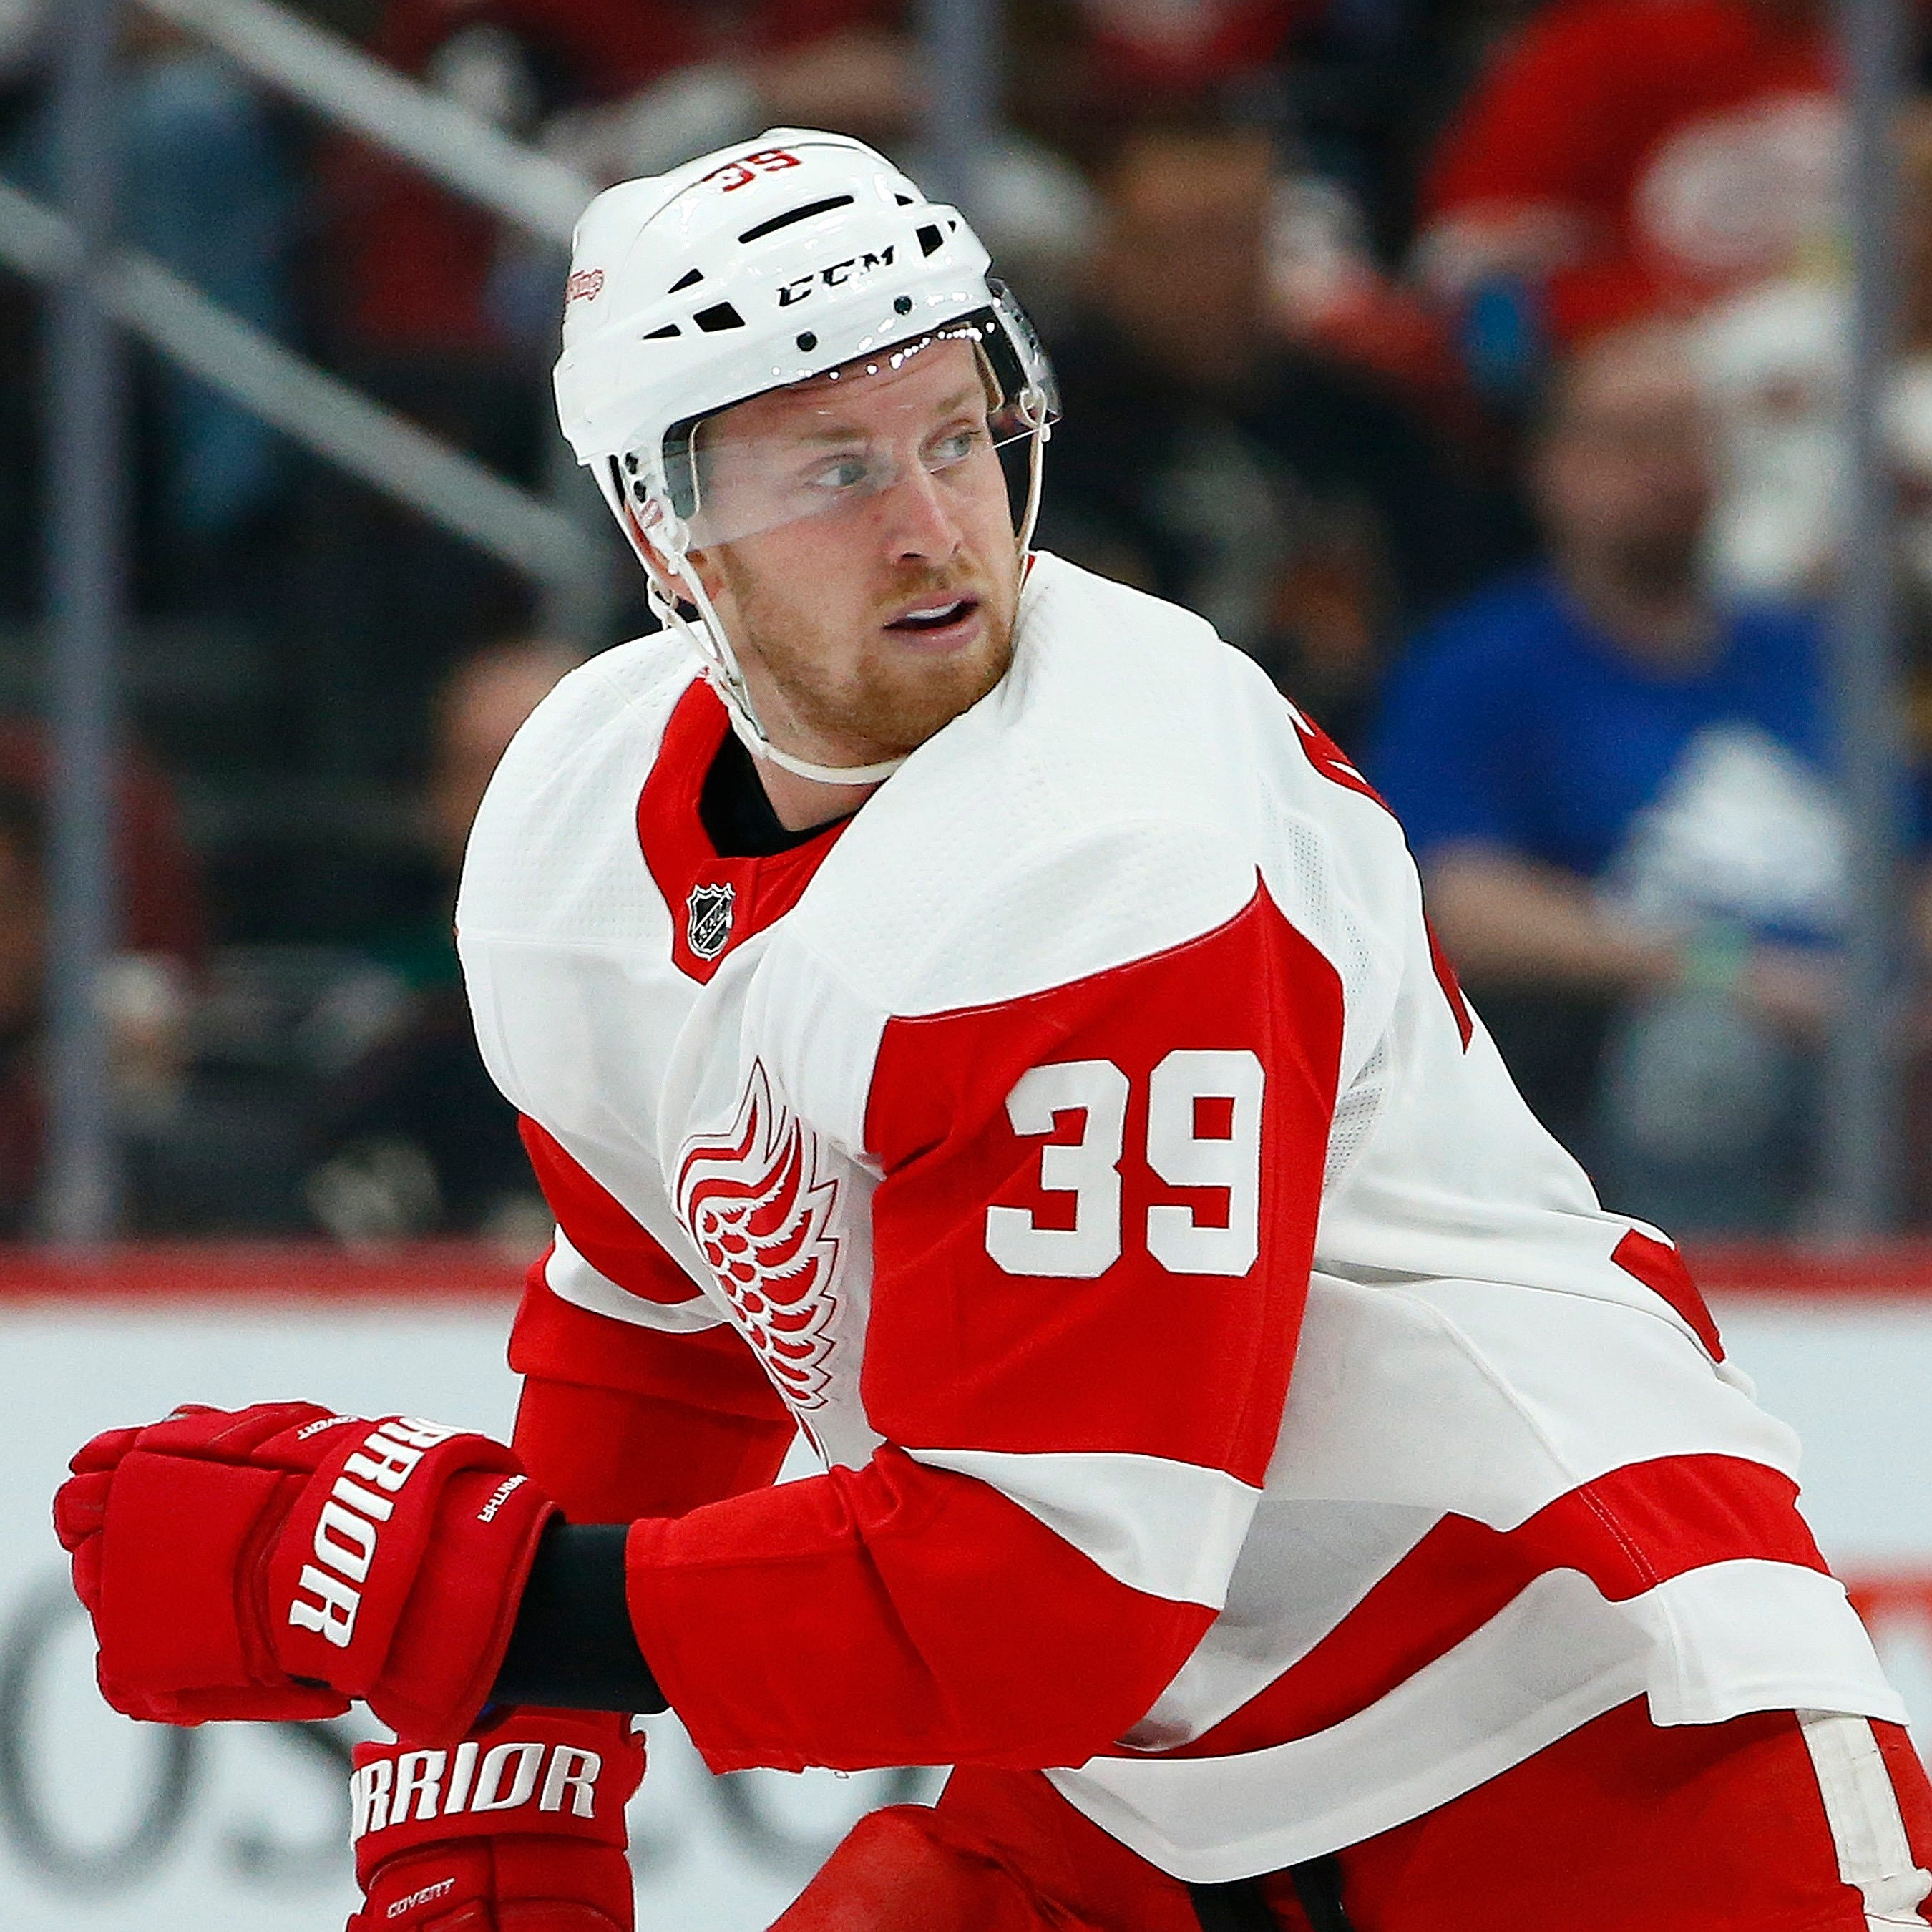 Big game leaves Red Wings' Anthony Mantha hungry for more